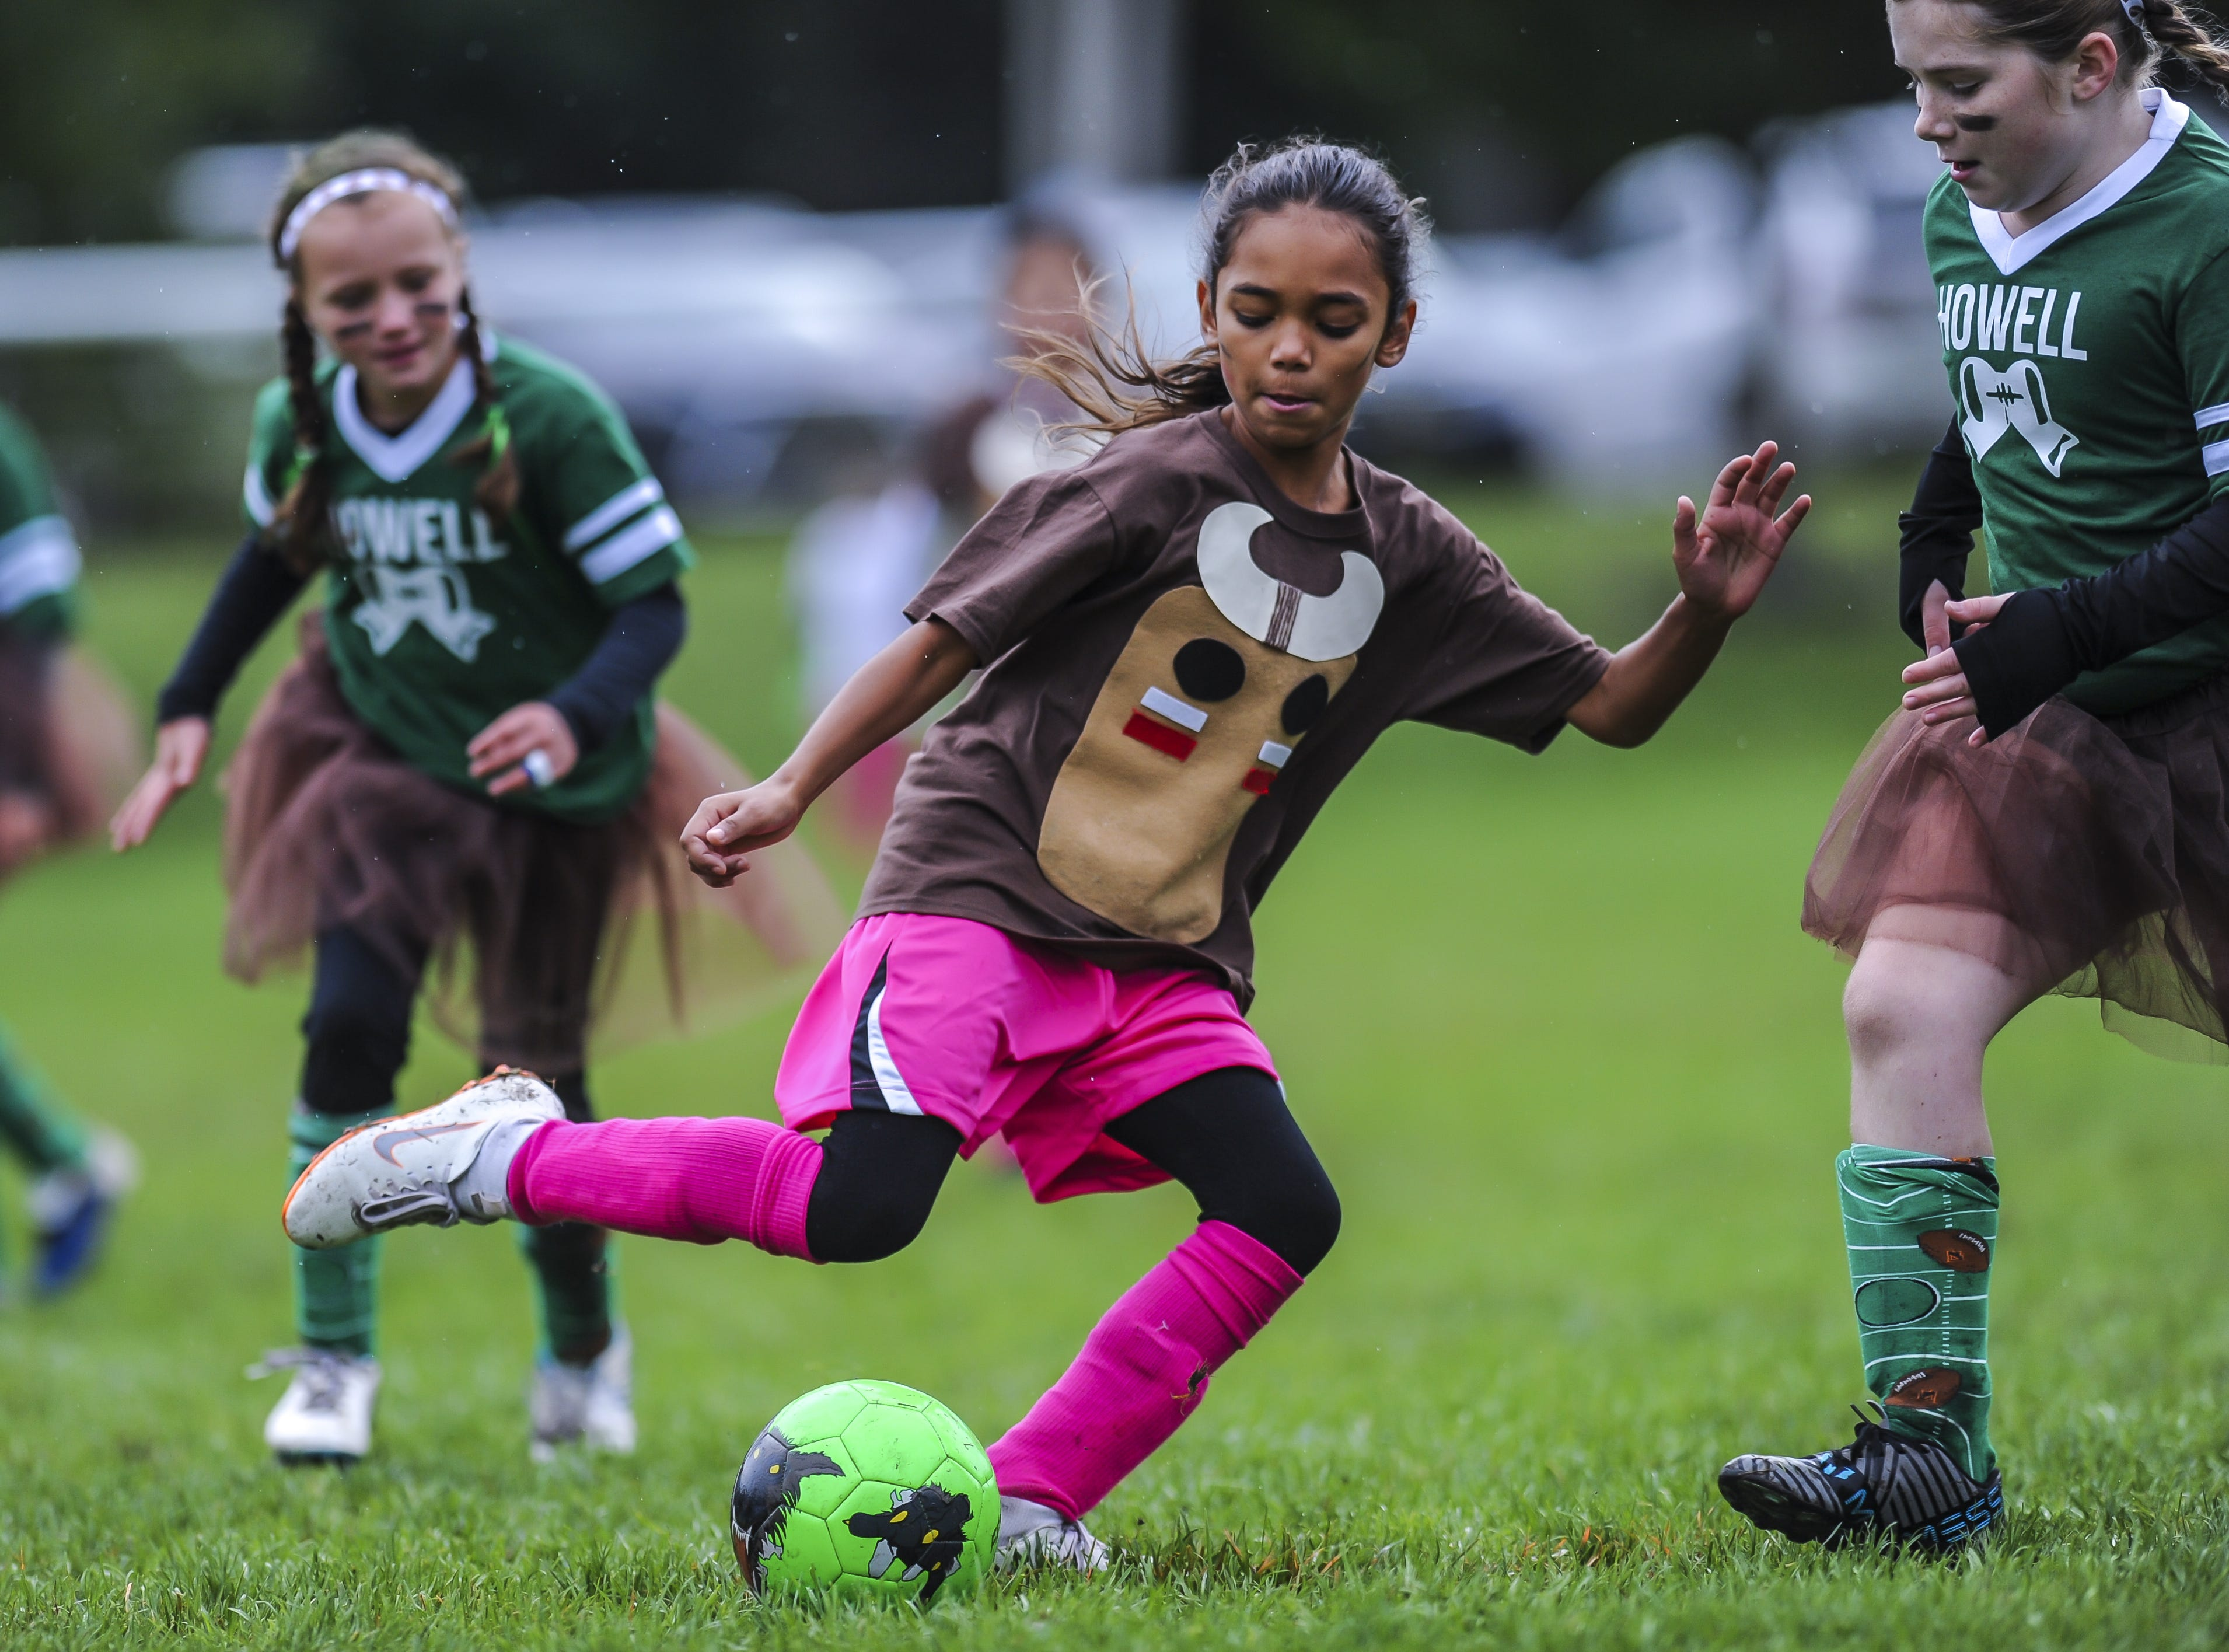 Old Bridge Strikers take on Howell Tornadoes in the Freehold Soccer League  Halloween-themed Fright Fest Tournament where teams wear Halloween costumes as uniforms and the fields are decked out with spooky decorations  at Michael J. Tighe Park in Freehold on Oct. 13, 2018.